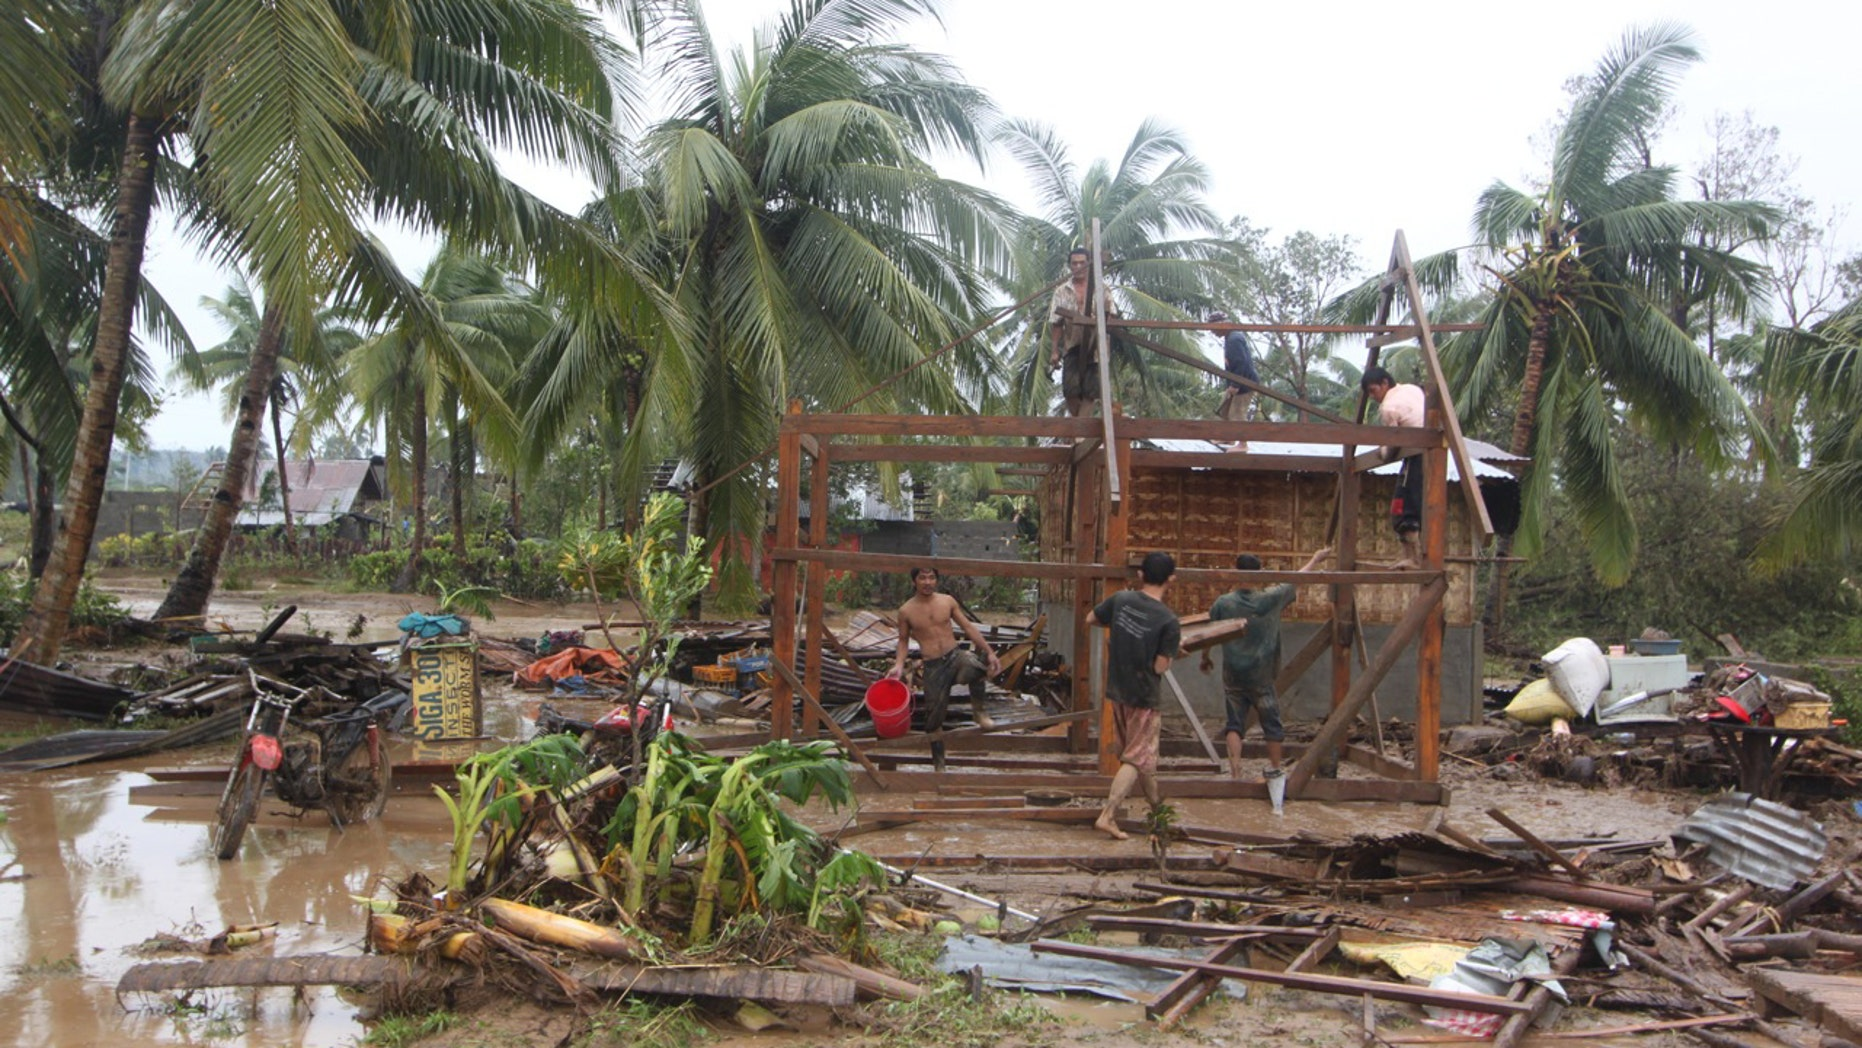 Dec. 4, 2012: Residents repair their damaged homes after Typhoon Bopha made landfall in Compostela Valley in southeastern Philippines.